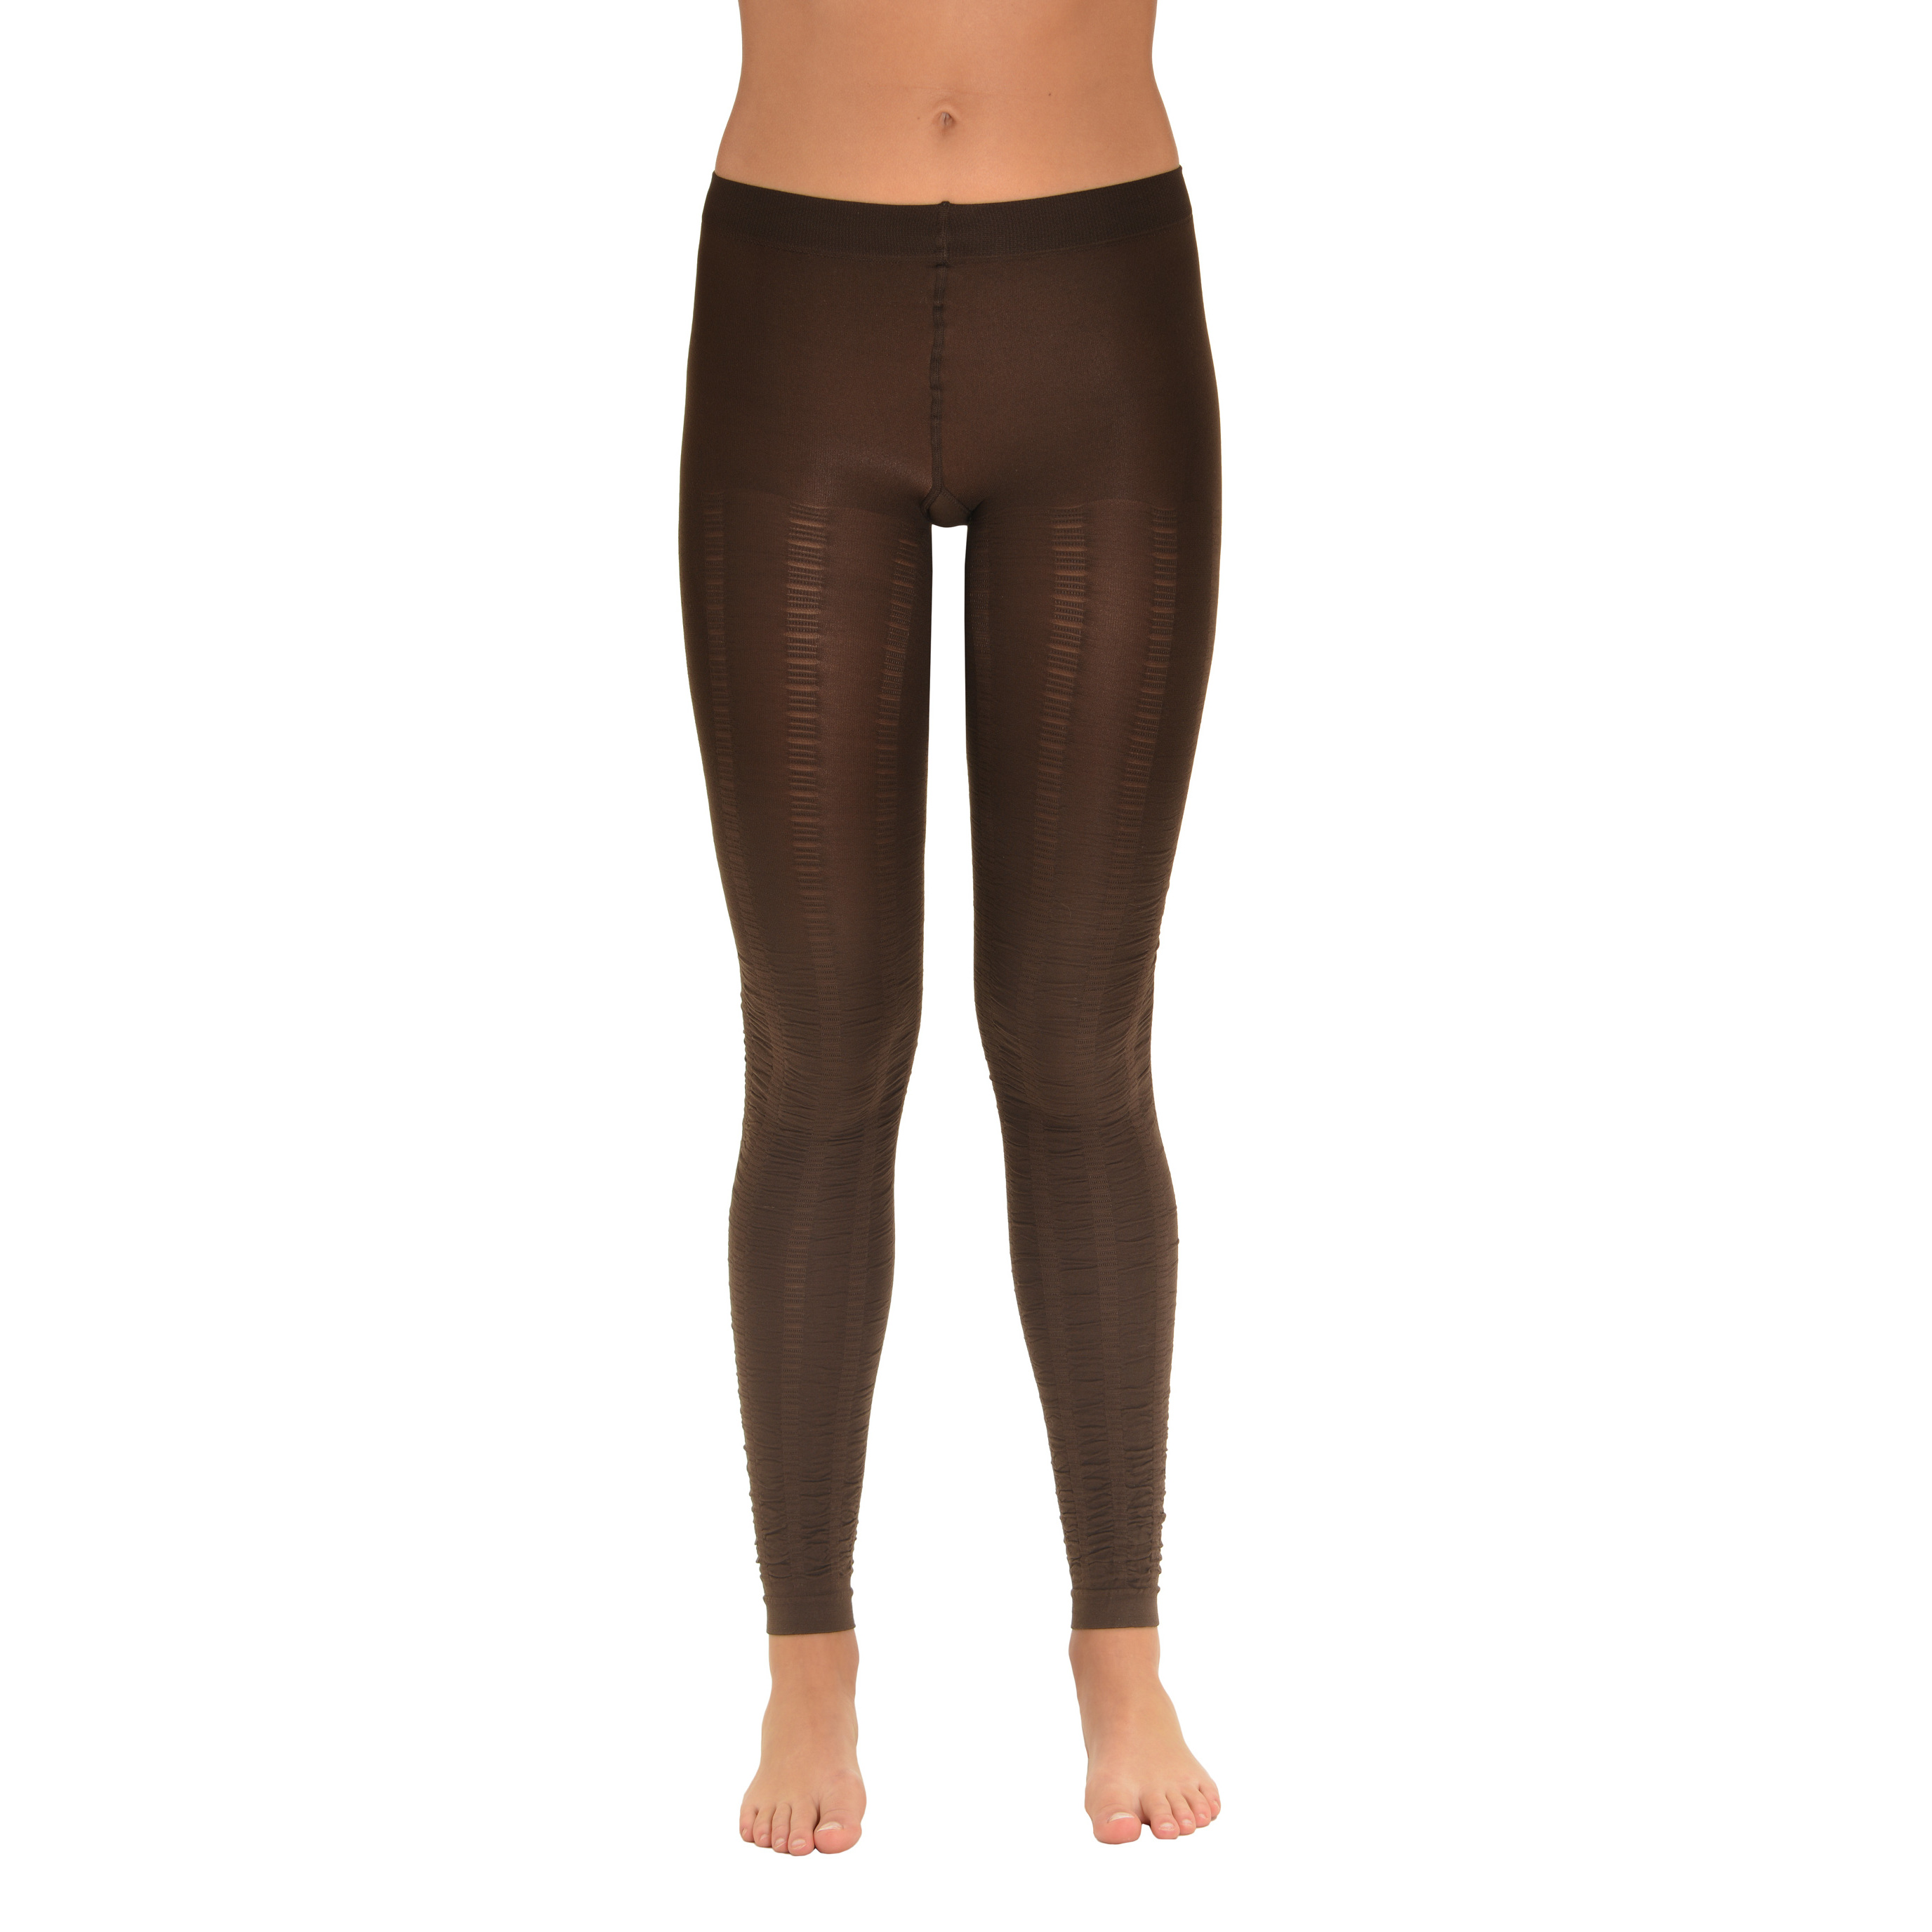 Shop stylish workout bottoms, pants, leggings & more designed to easily transition Shop Your CALIA Style · Top Athletic Apparel · Yoga Accessories · Shop Last Chance LooksStyles: Athletic Tops, Sports Bras, Yoga Pants, Active Wear.